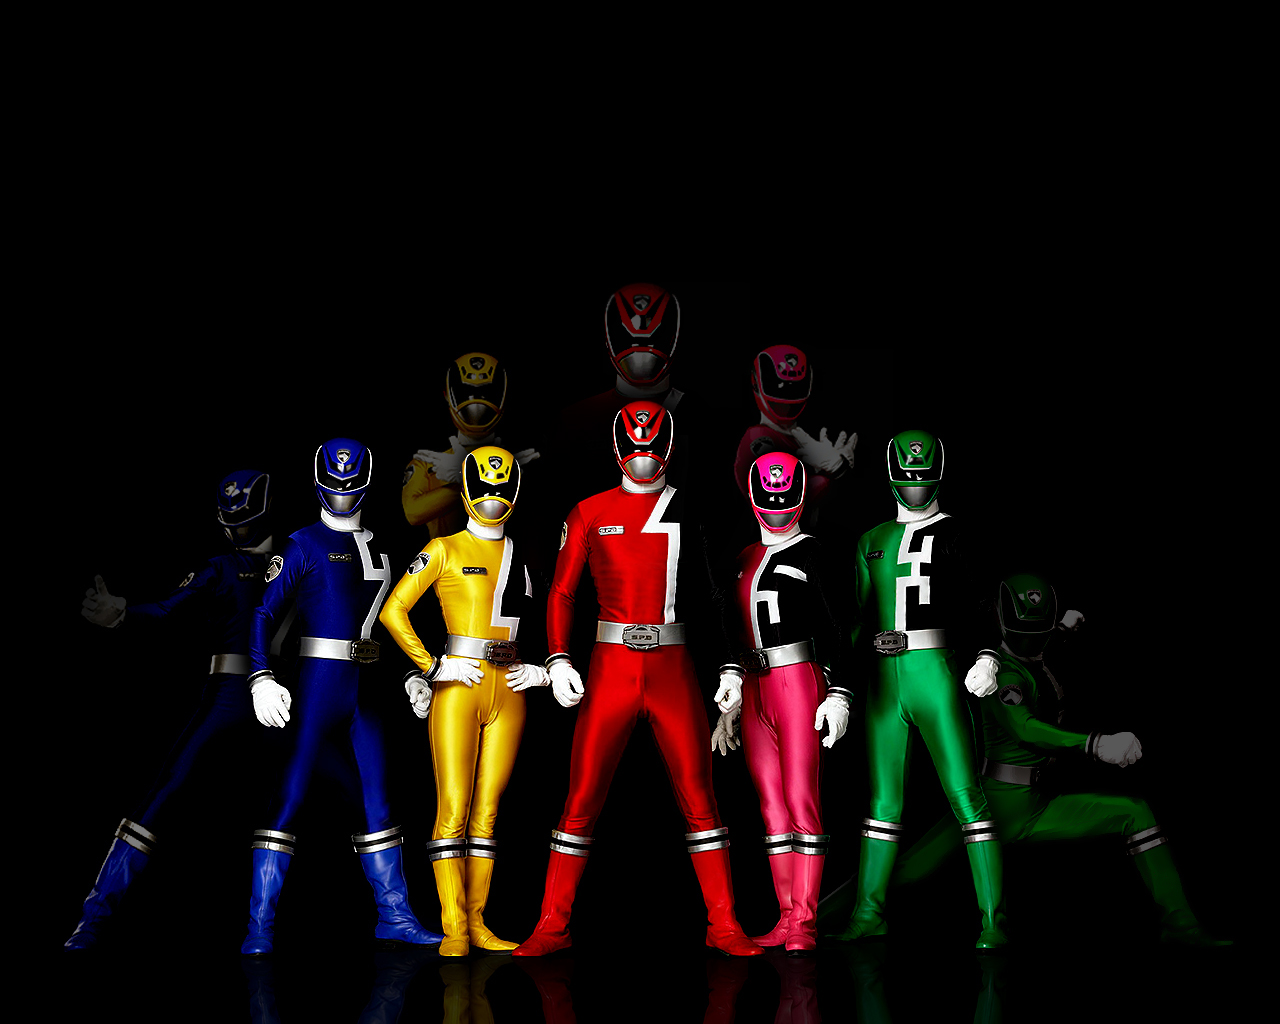 http://fc07.deviantart.com/fs15/f/2007/112/4/6/POWER_RANGERS_SPD_WALLPAPER_by_Hylian_Z.jpg